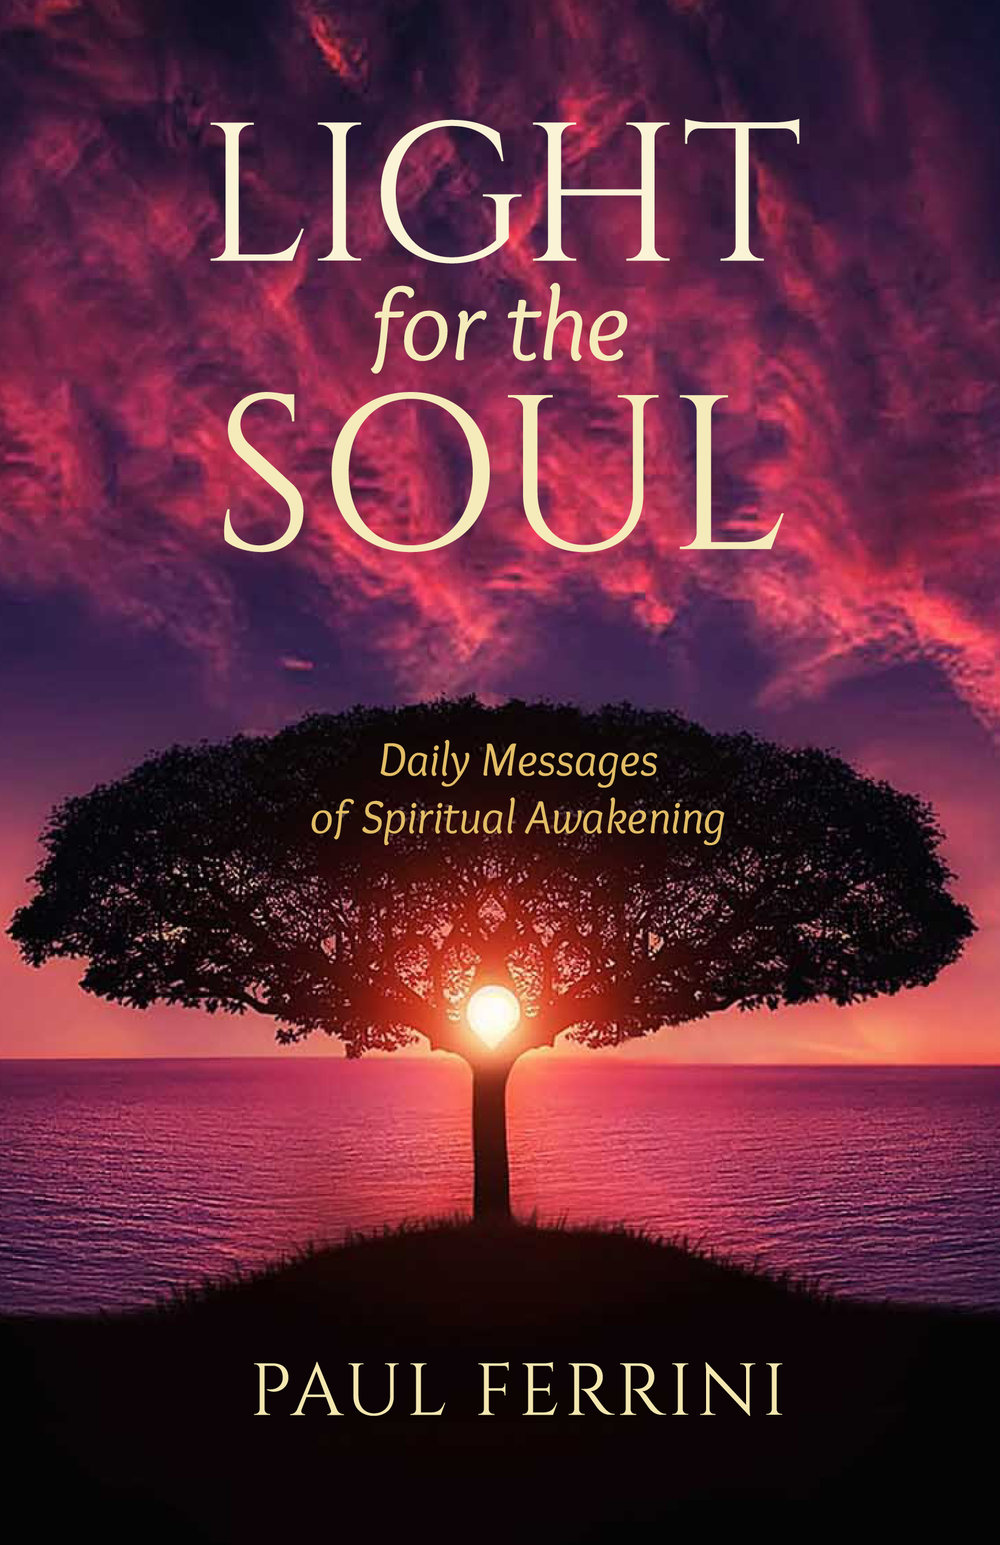 Light for the Soul Ebook  $10.00